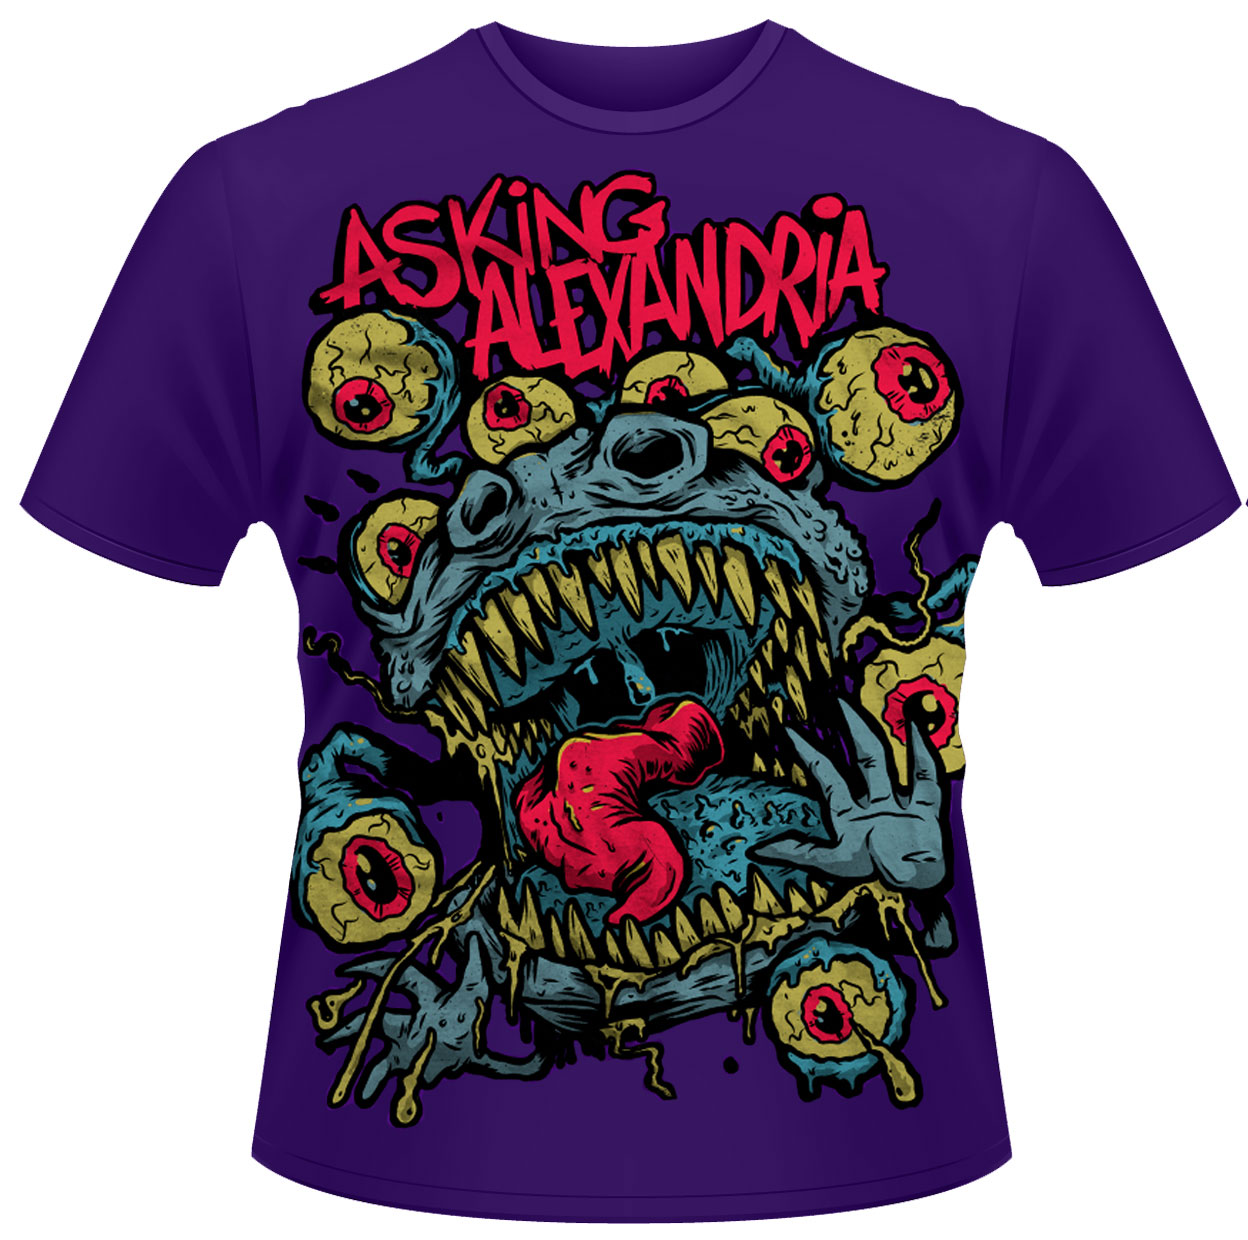 Asking Alexandria 'Eyeballs' T-Shirt - NEW & OFFICIAL!